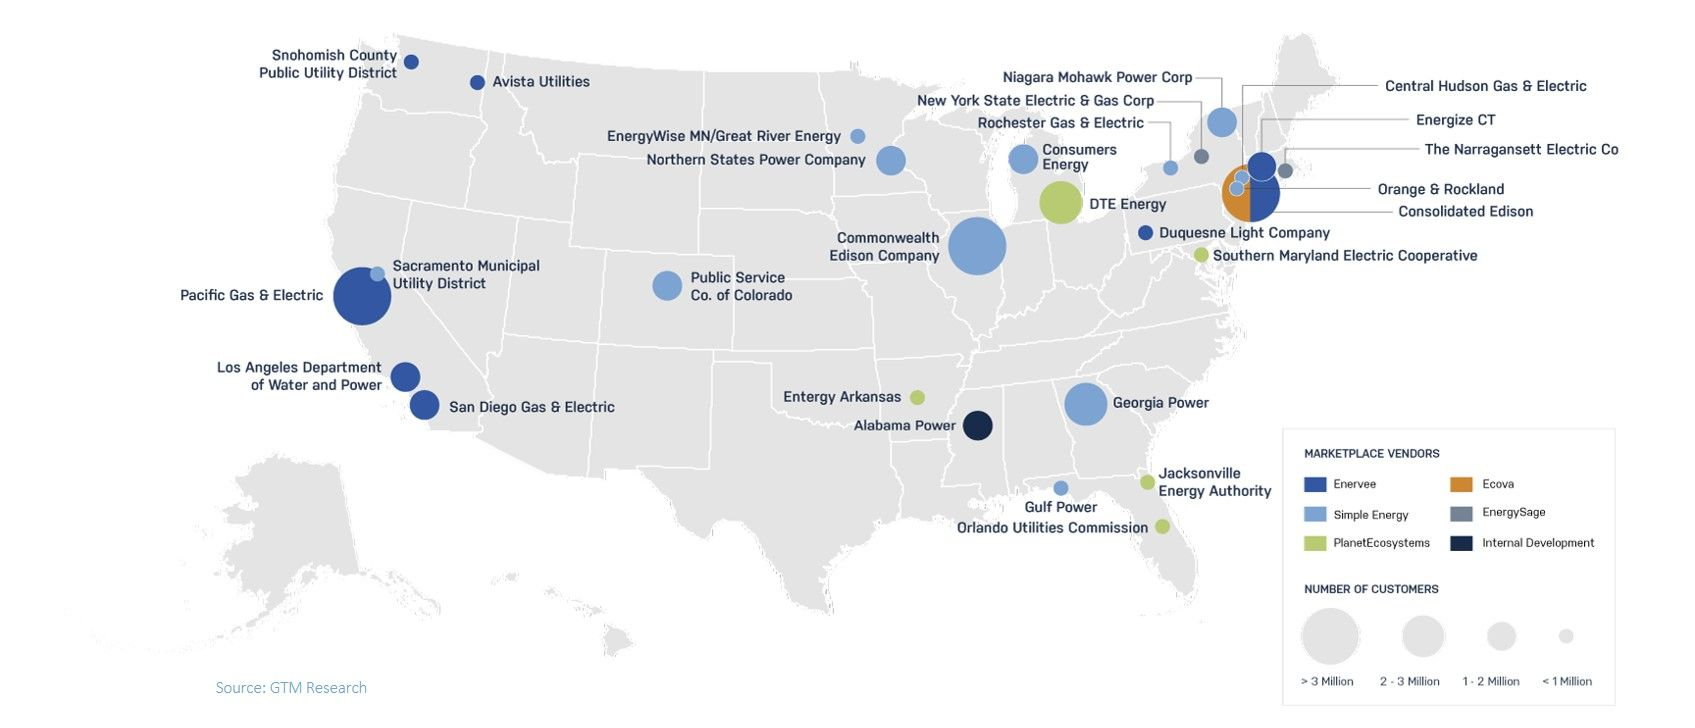 der marketplaces in the united states, gtm research